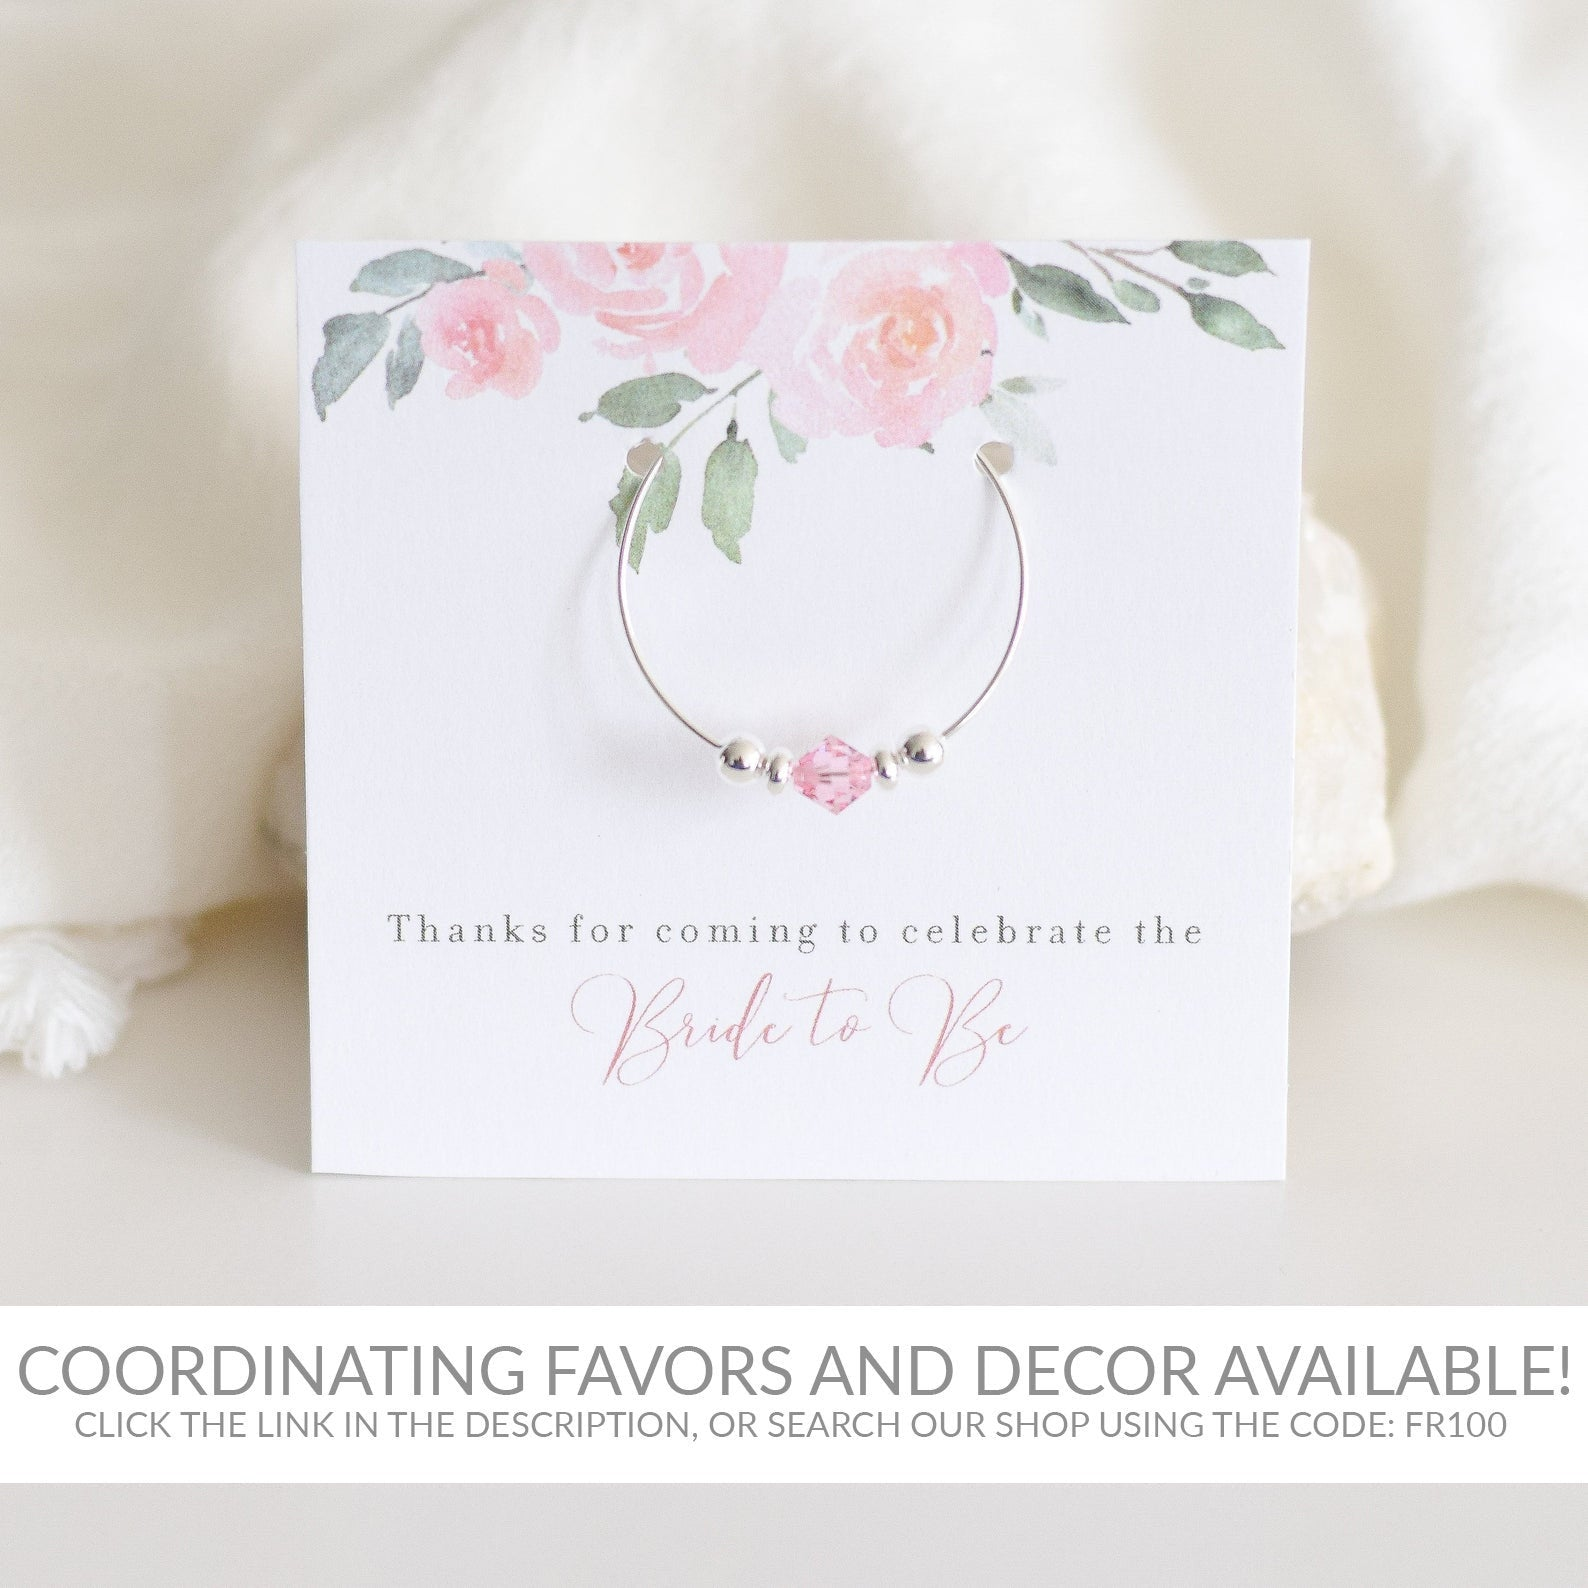 Blush Pink Floral Printable Favors Sign INSTANT DOWNLOAD, Birthday, Bridal Shower, Baby Shower, Wedding Decorations and Supplies - FR100 - @PlumPolkaDot